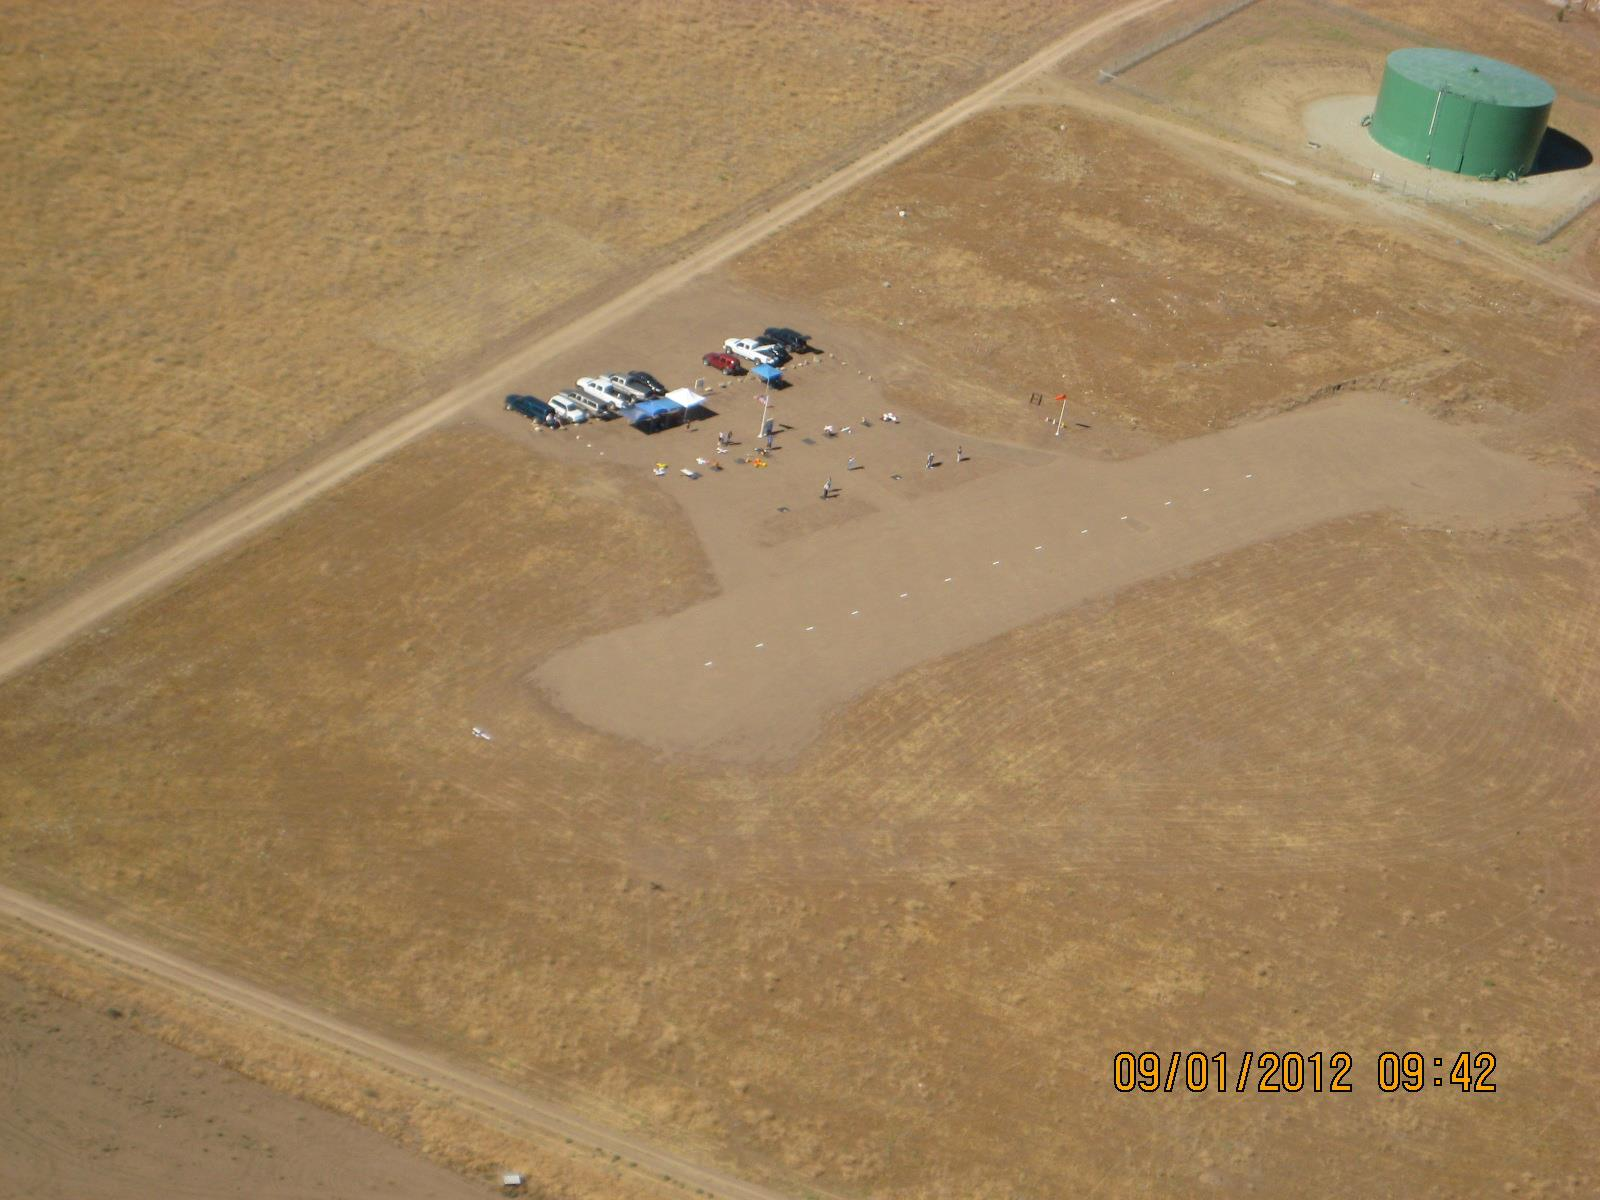 Early aerial view of Tehachapi Crosswinds flying field. Runway has been expanded since this photo.